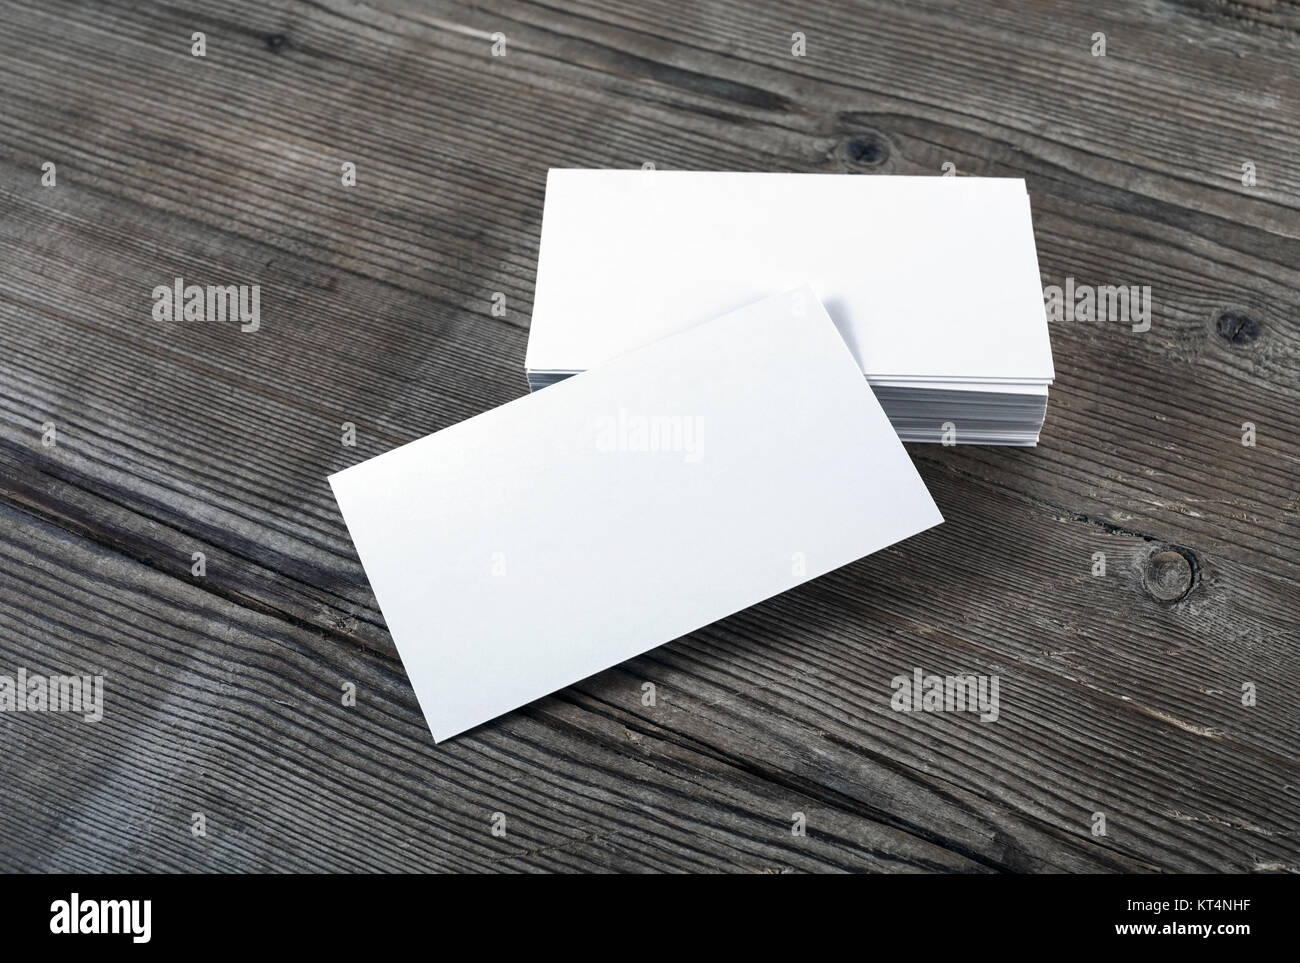 Blank business cards - Stock Image